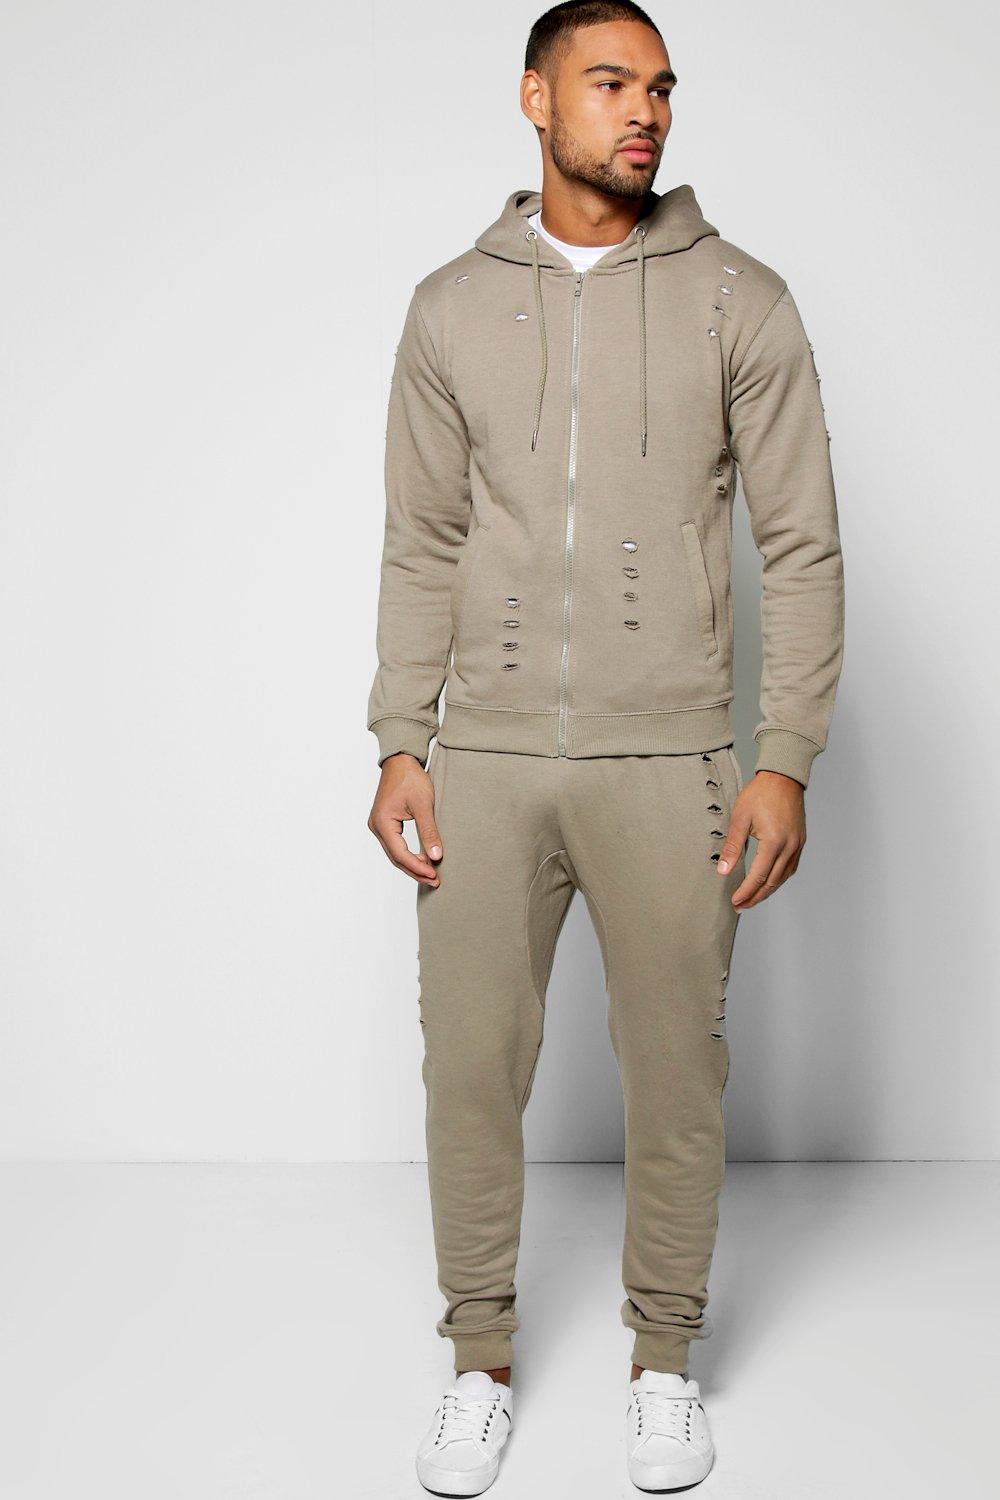 Find Men's Tracksuits at bestsupsm5.cf Browse a wide range of styles and order online.